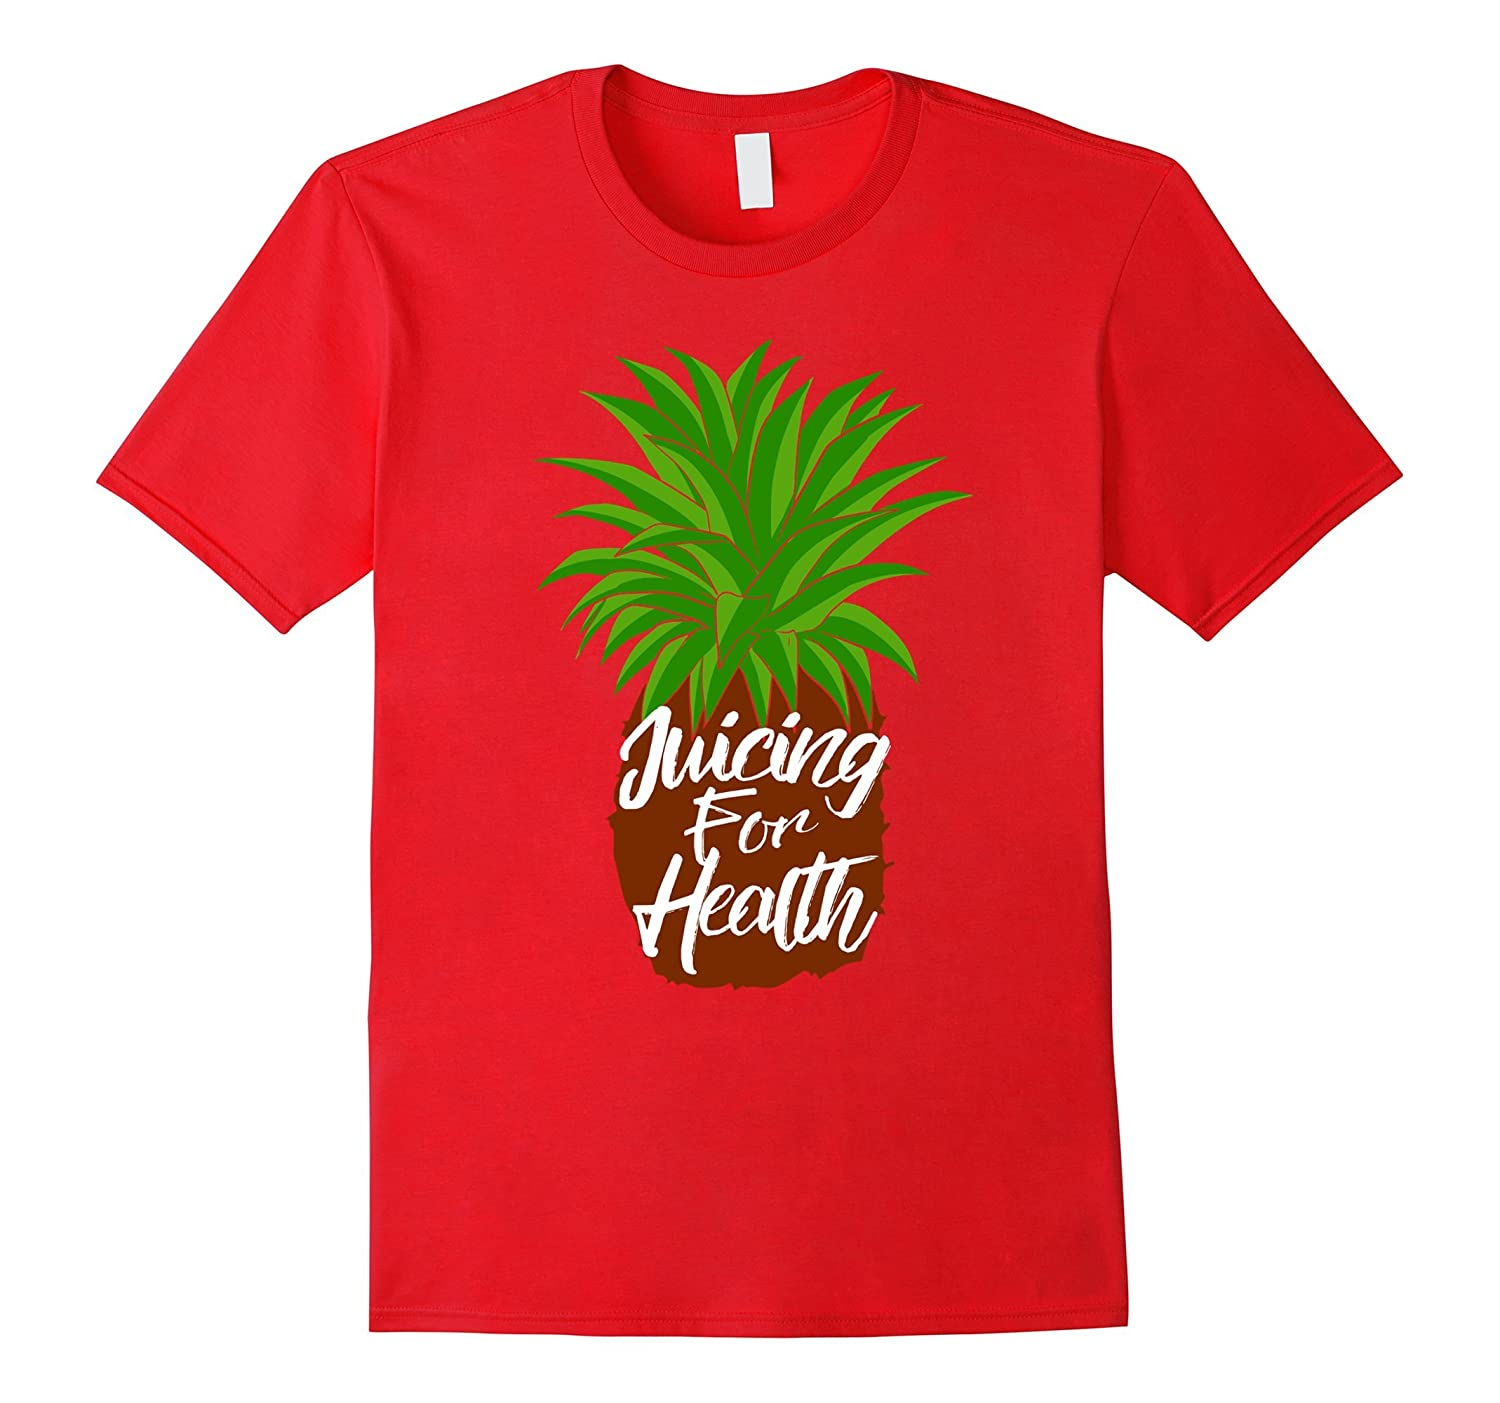 Juicing For Health T Shirt | Pineapple Plant Based Shirt-ANZ